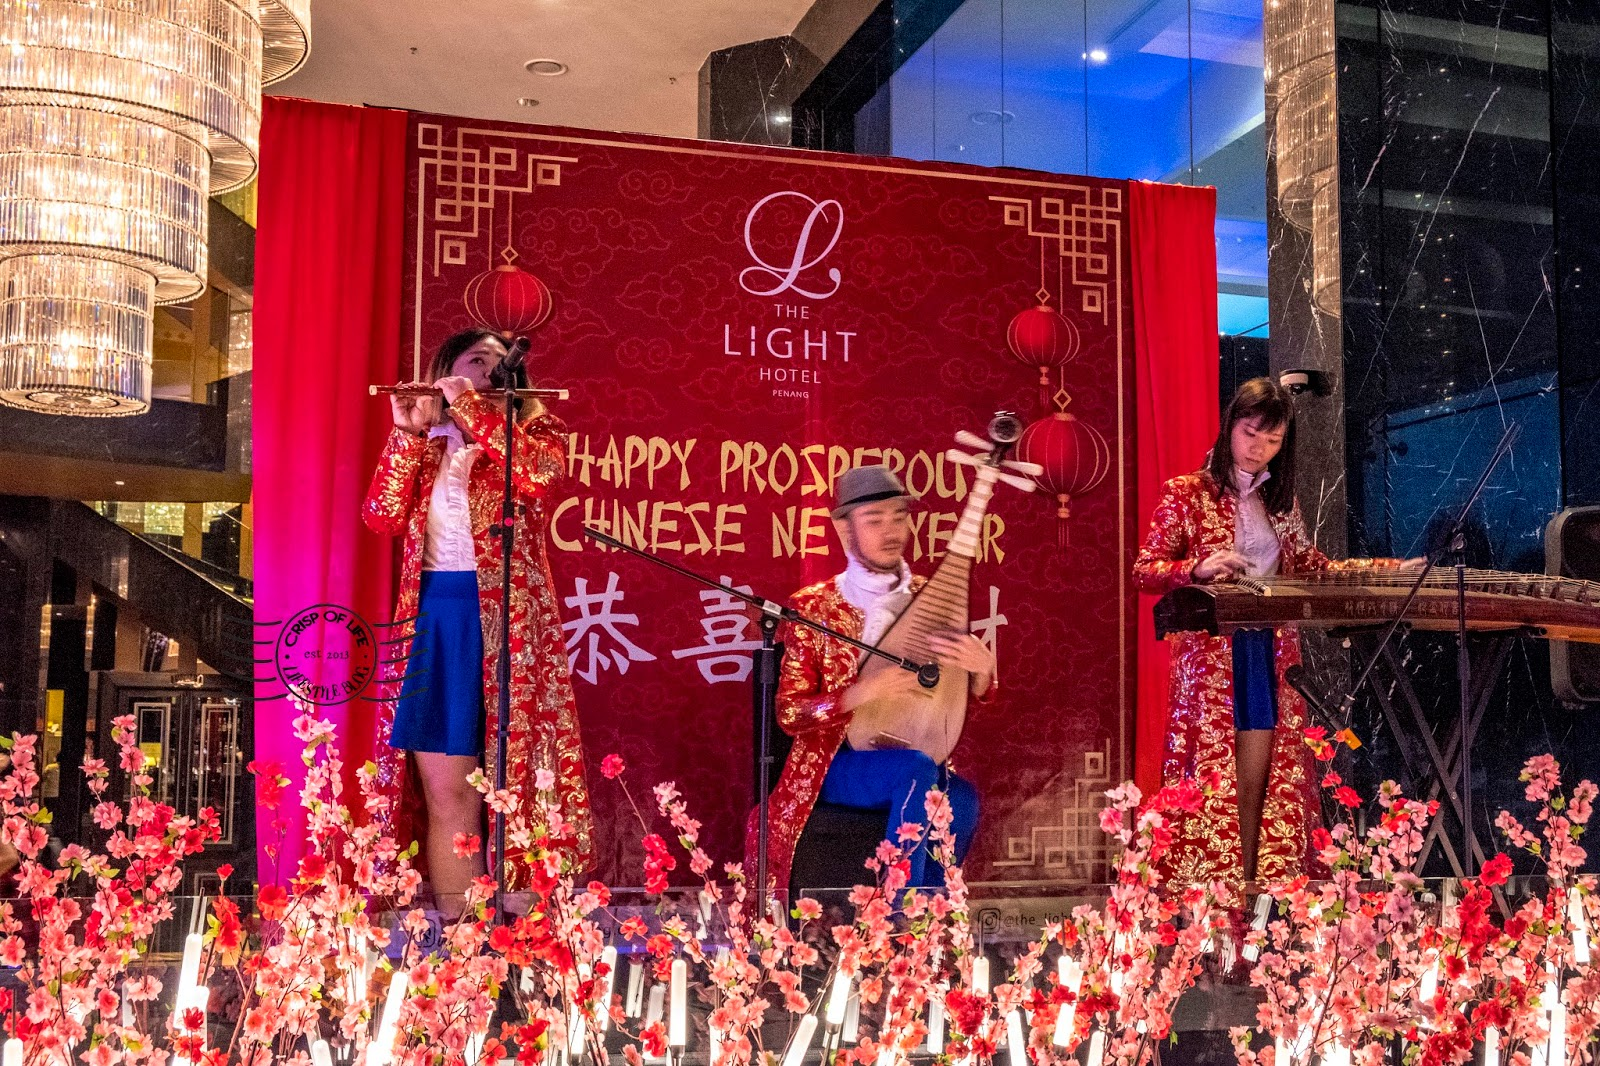 The Light Hotel Chinese New Year 2019 Celebration